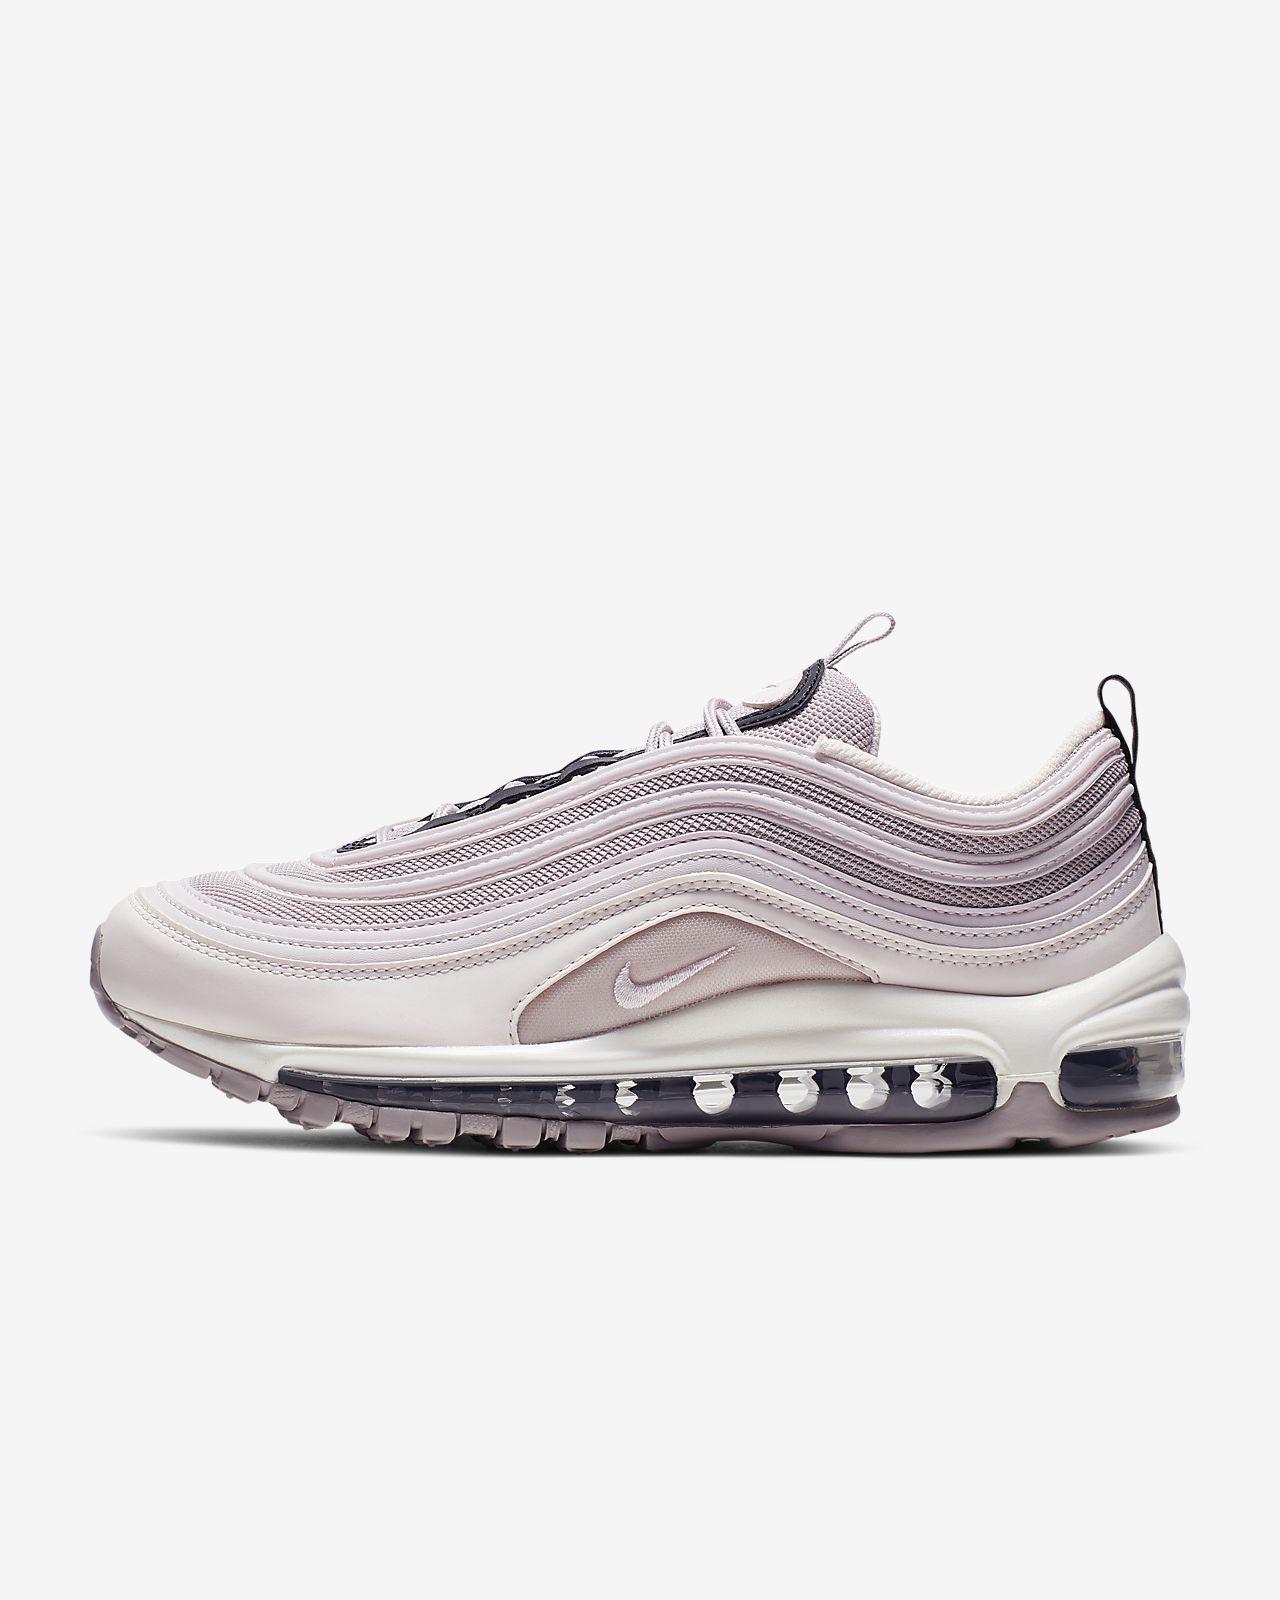 official photos 59ba7 b9ada ... Nike Air Max 97 Women s Shoe